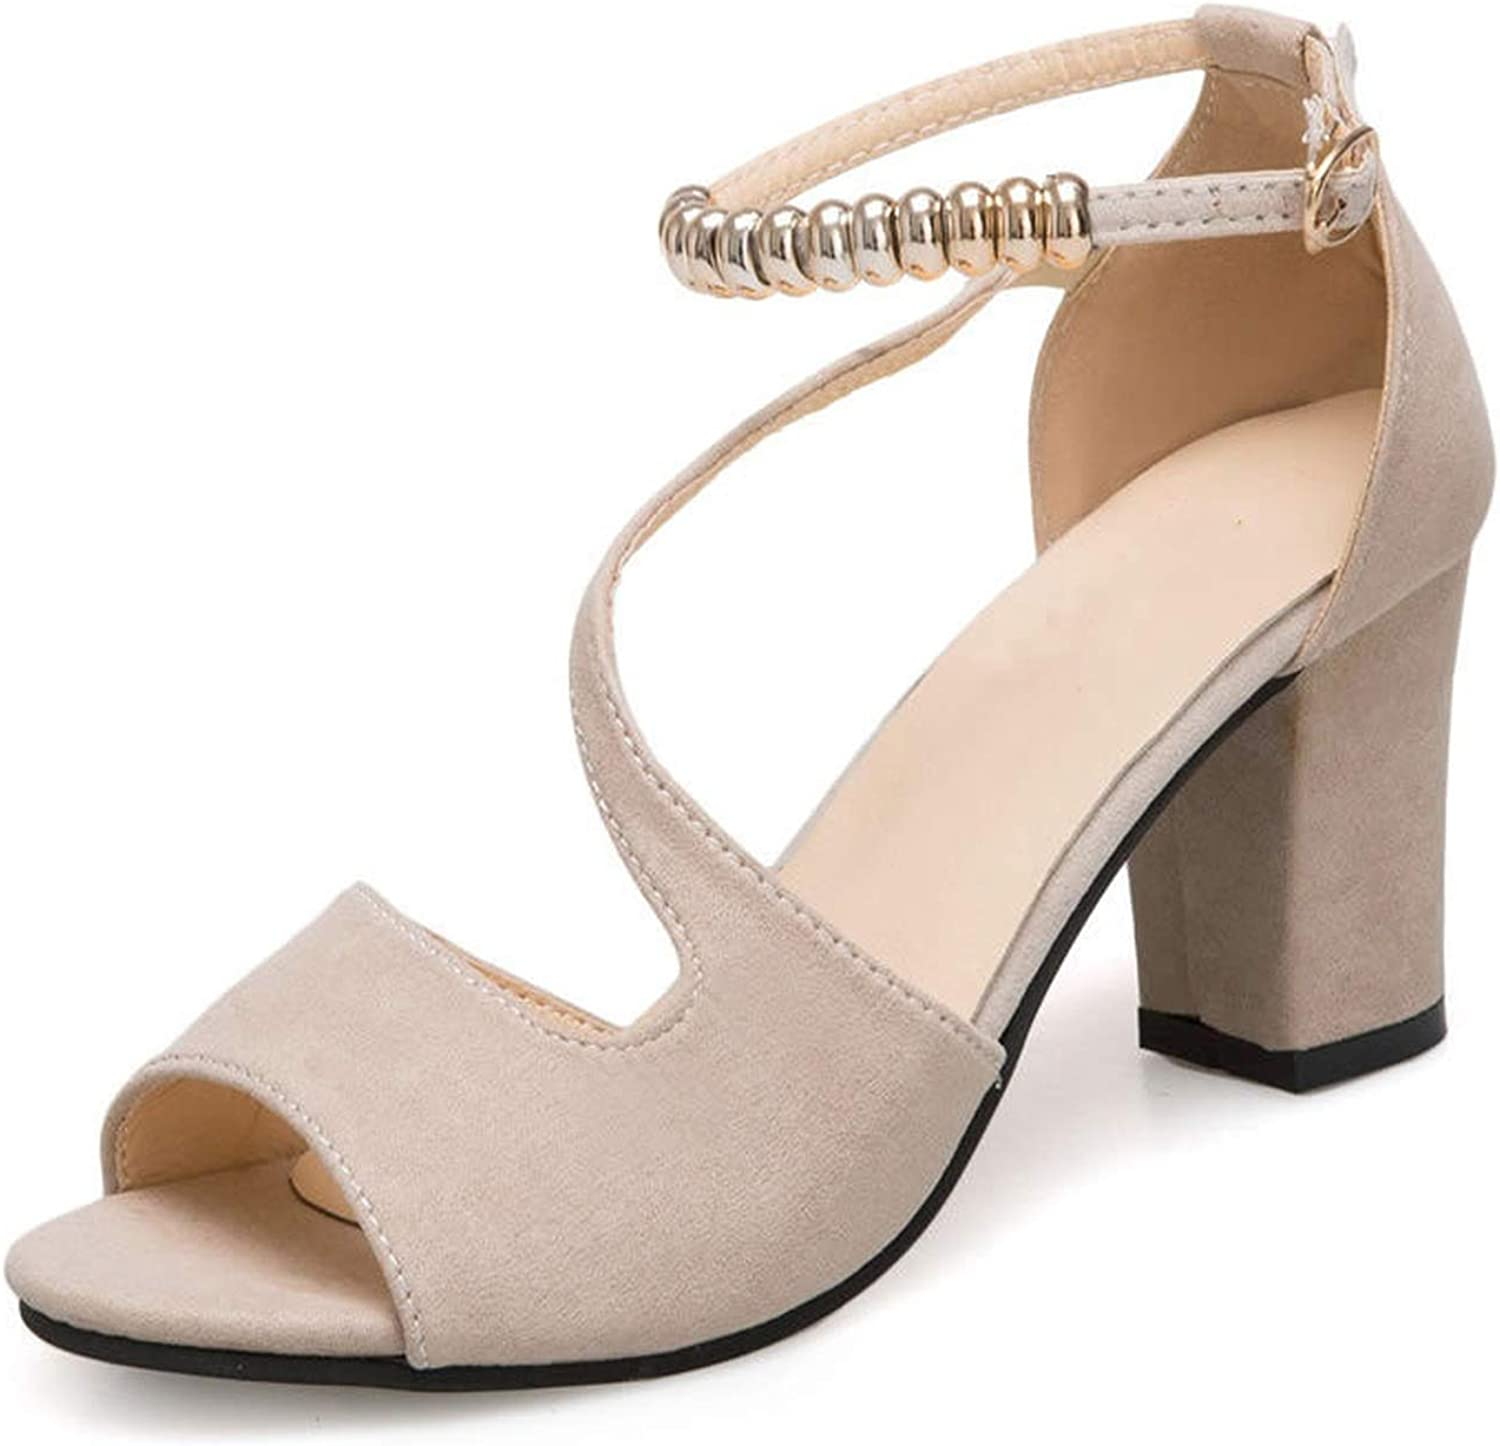 Ankle Strap Heels Women Sandals Women Open Toe Chunky Thick High Heels Party Dress shoes